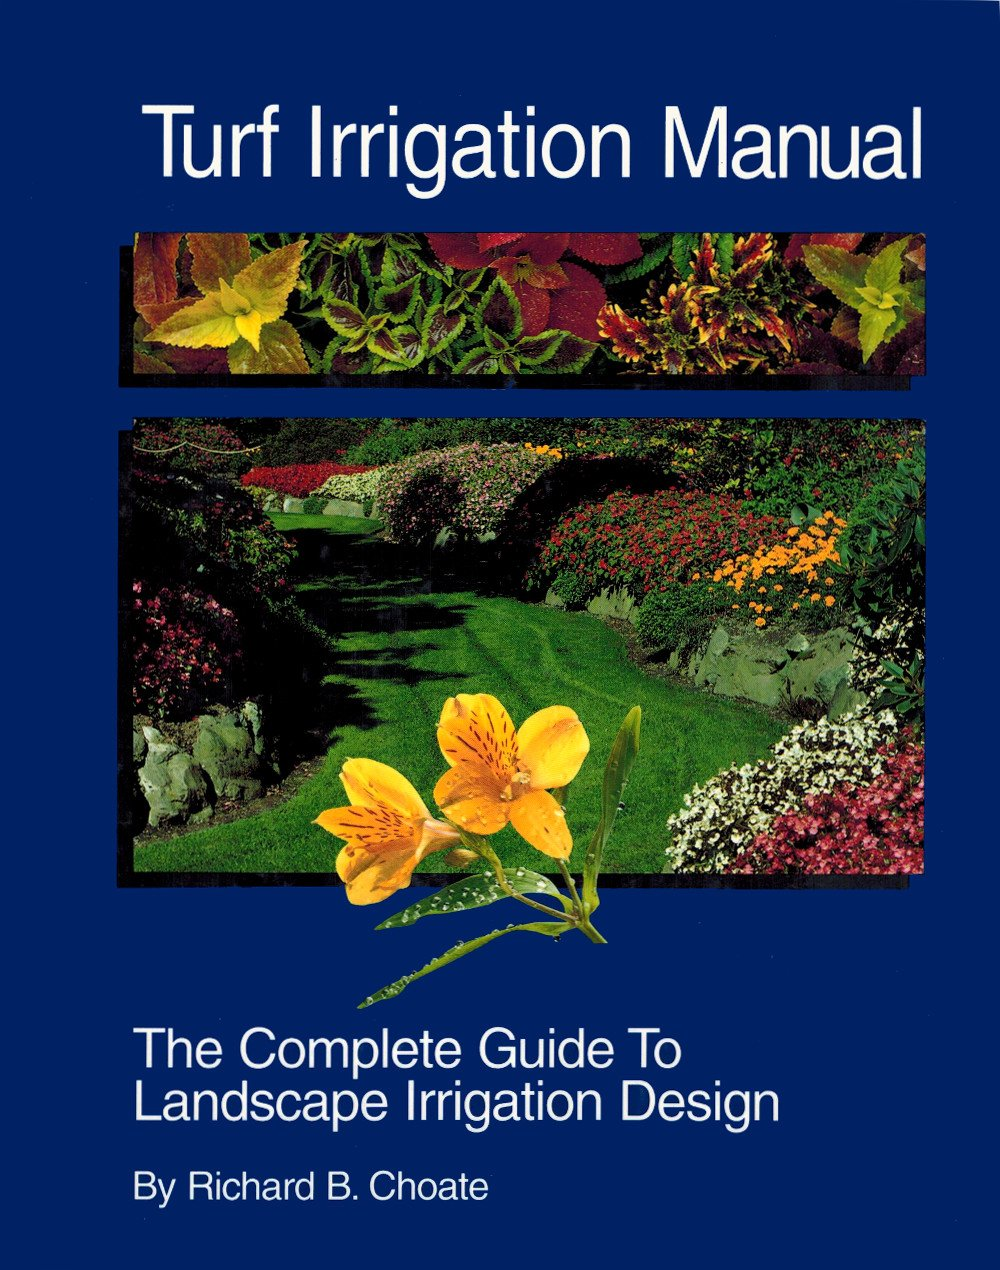 Amazon.com: Turf Irrigation Manual: The Complete Guide to Turf and ...